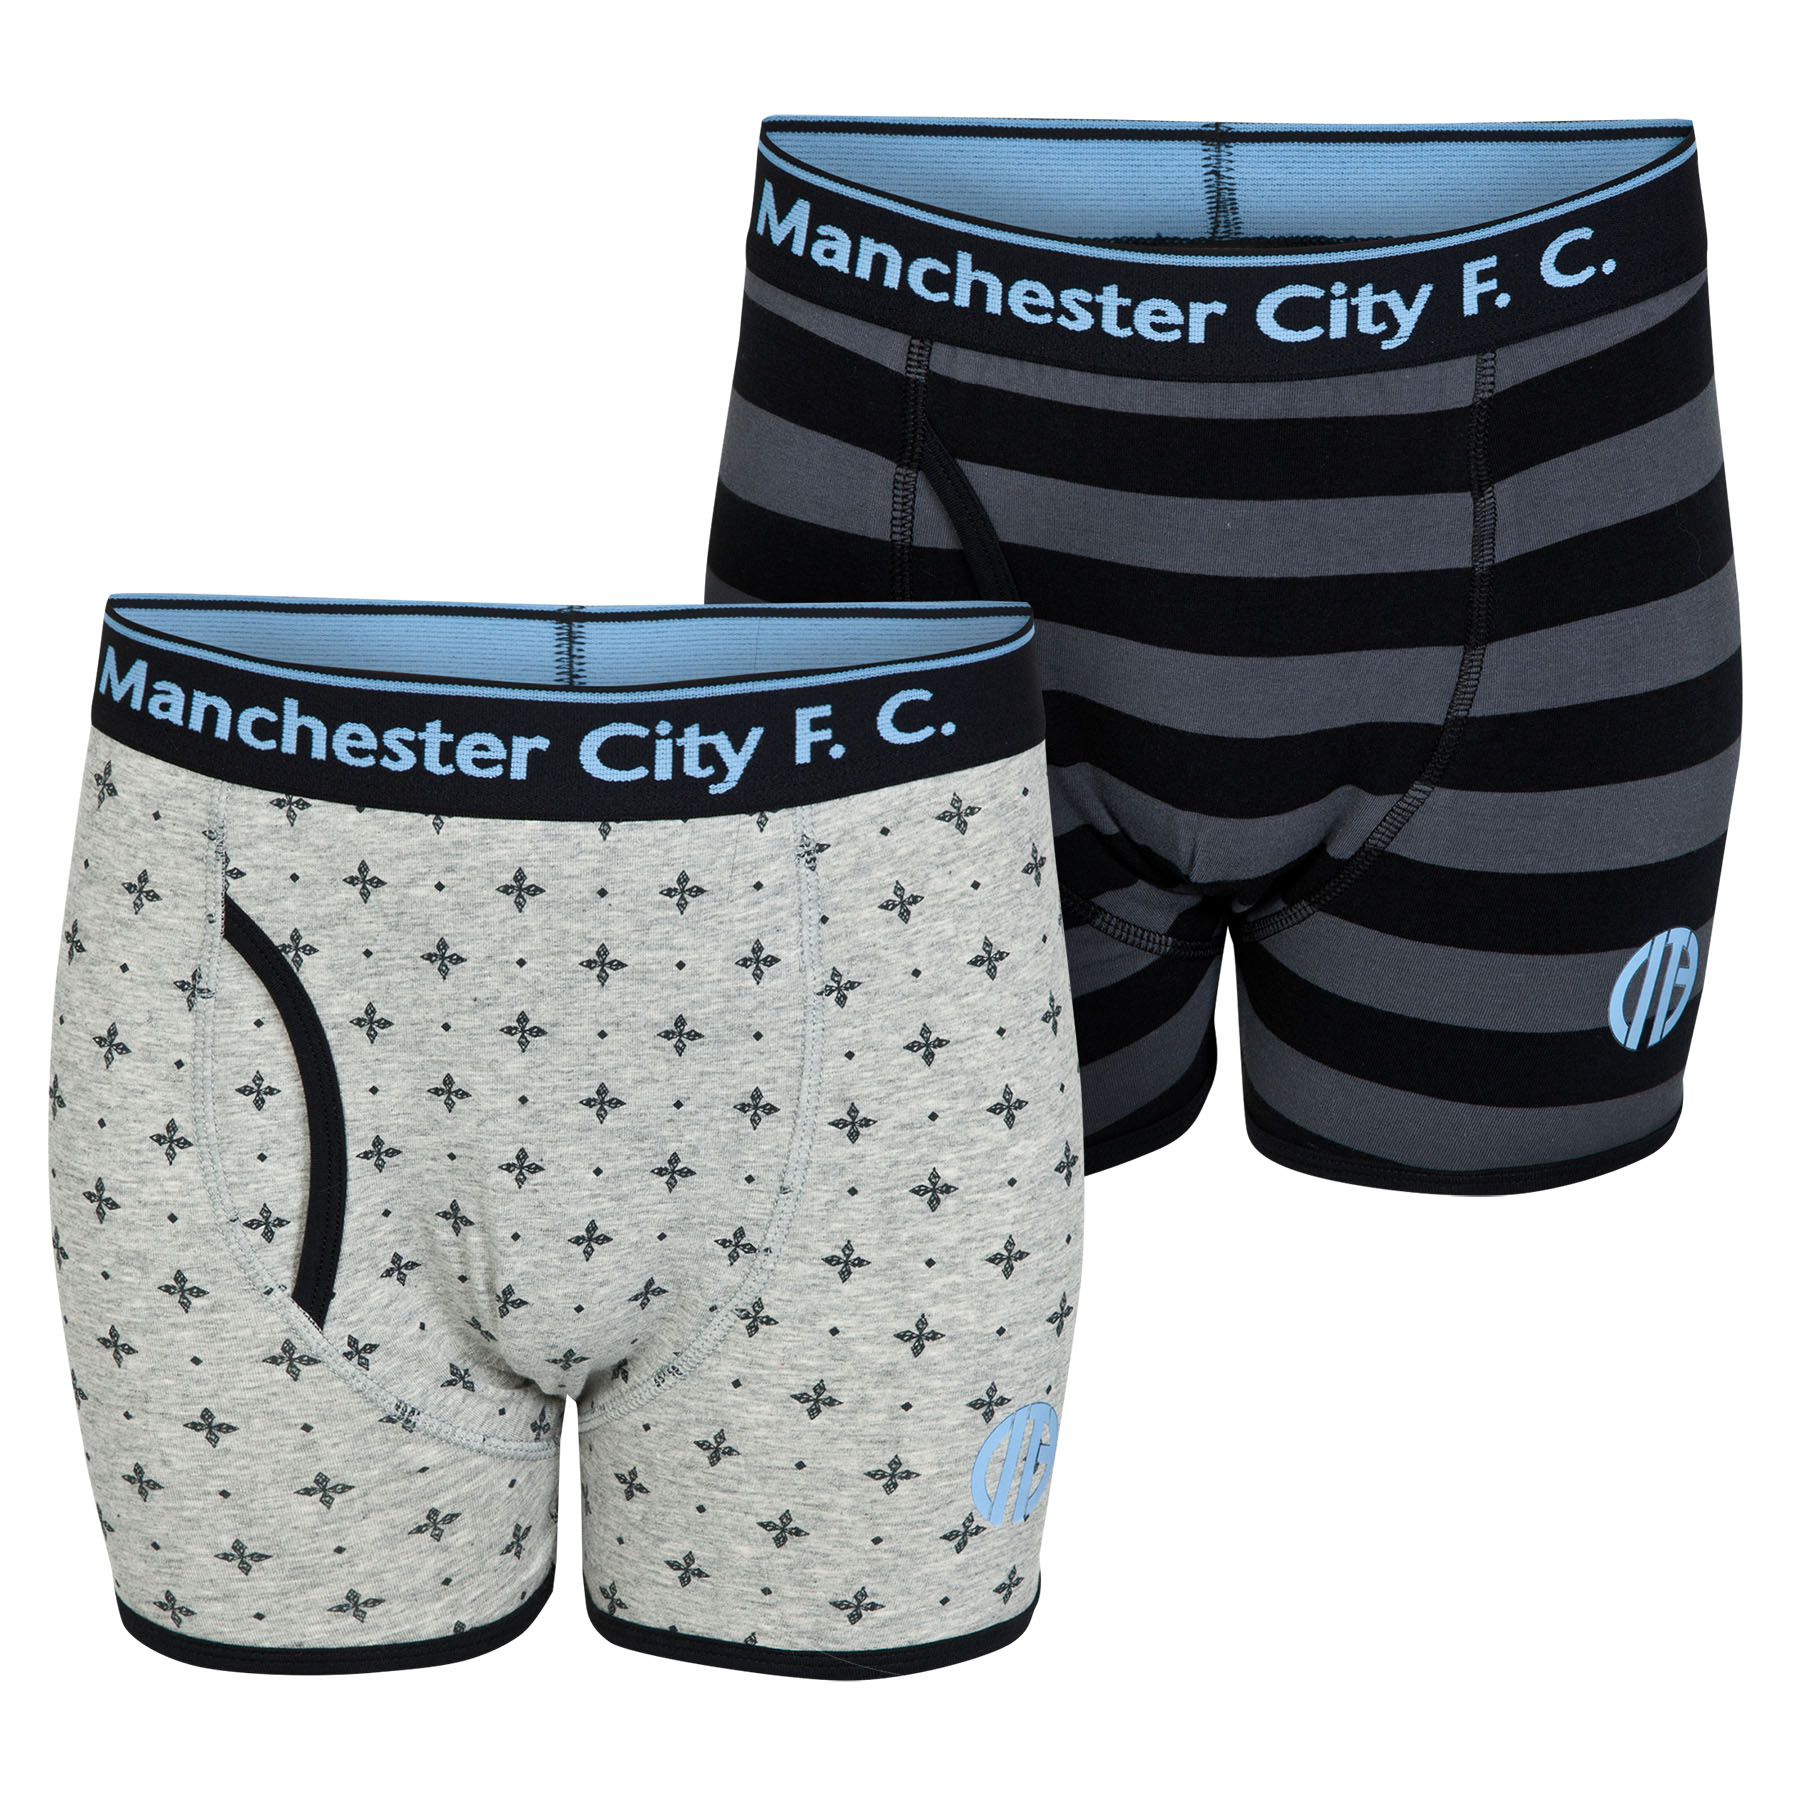 Manchester City 2PK Boxer Shorts - Black/Grey - Older Boys